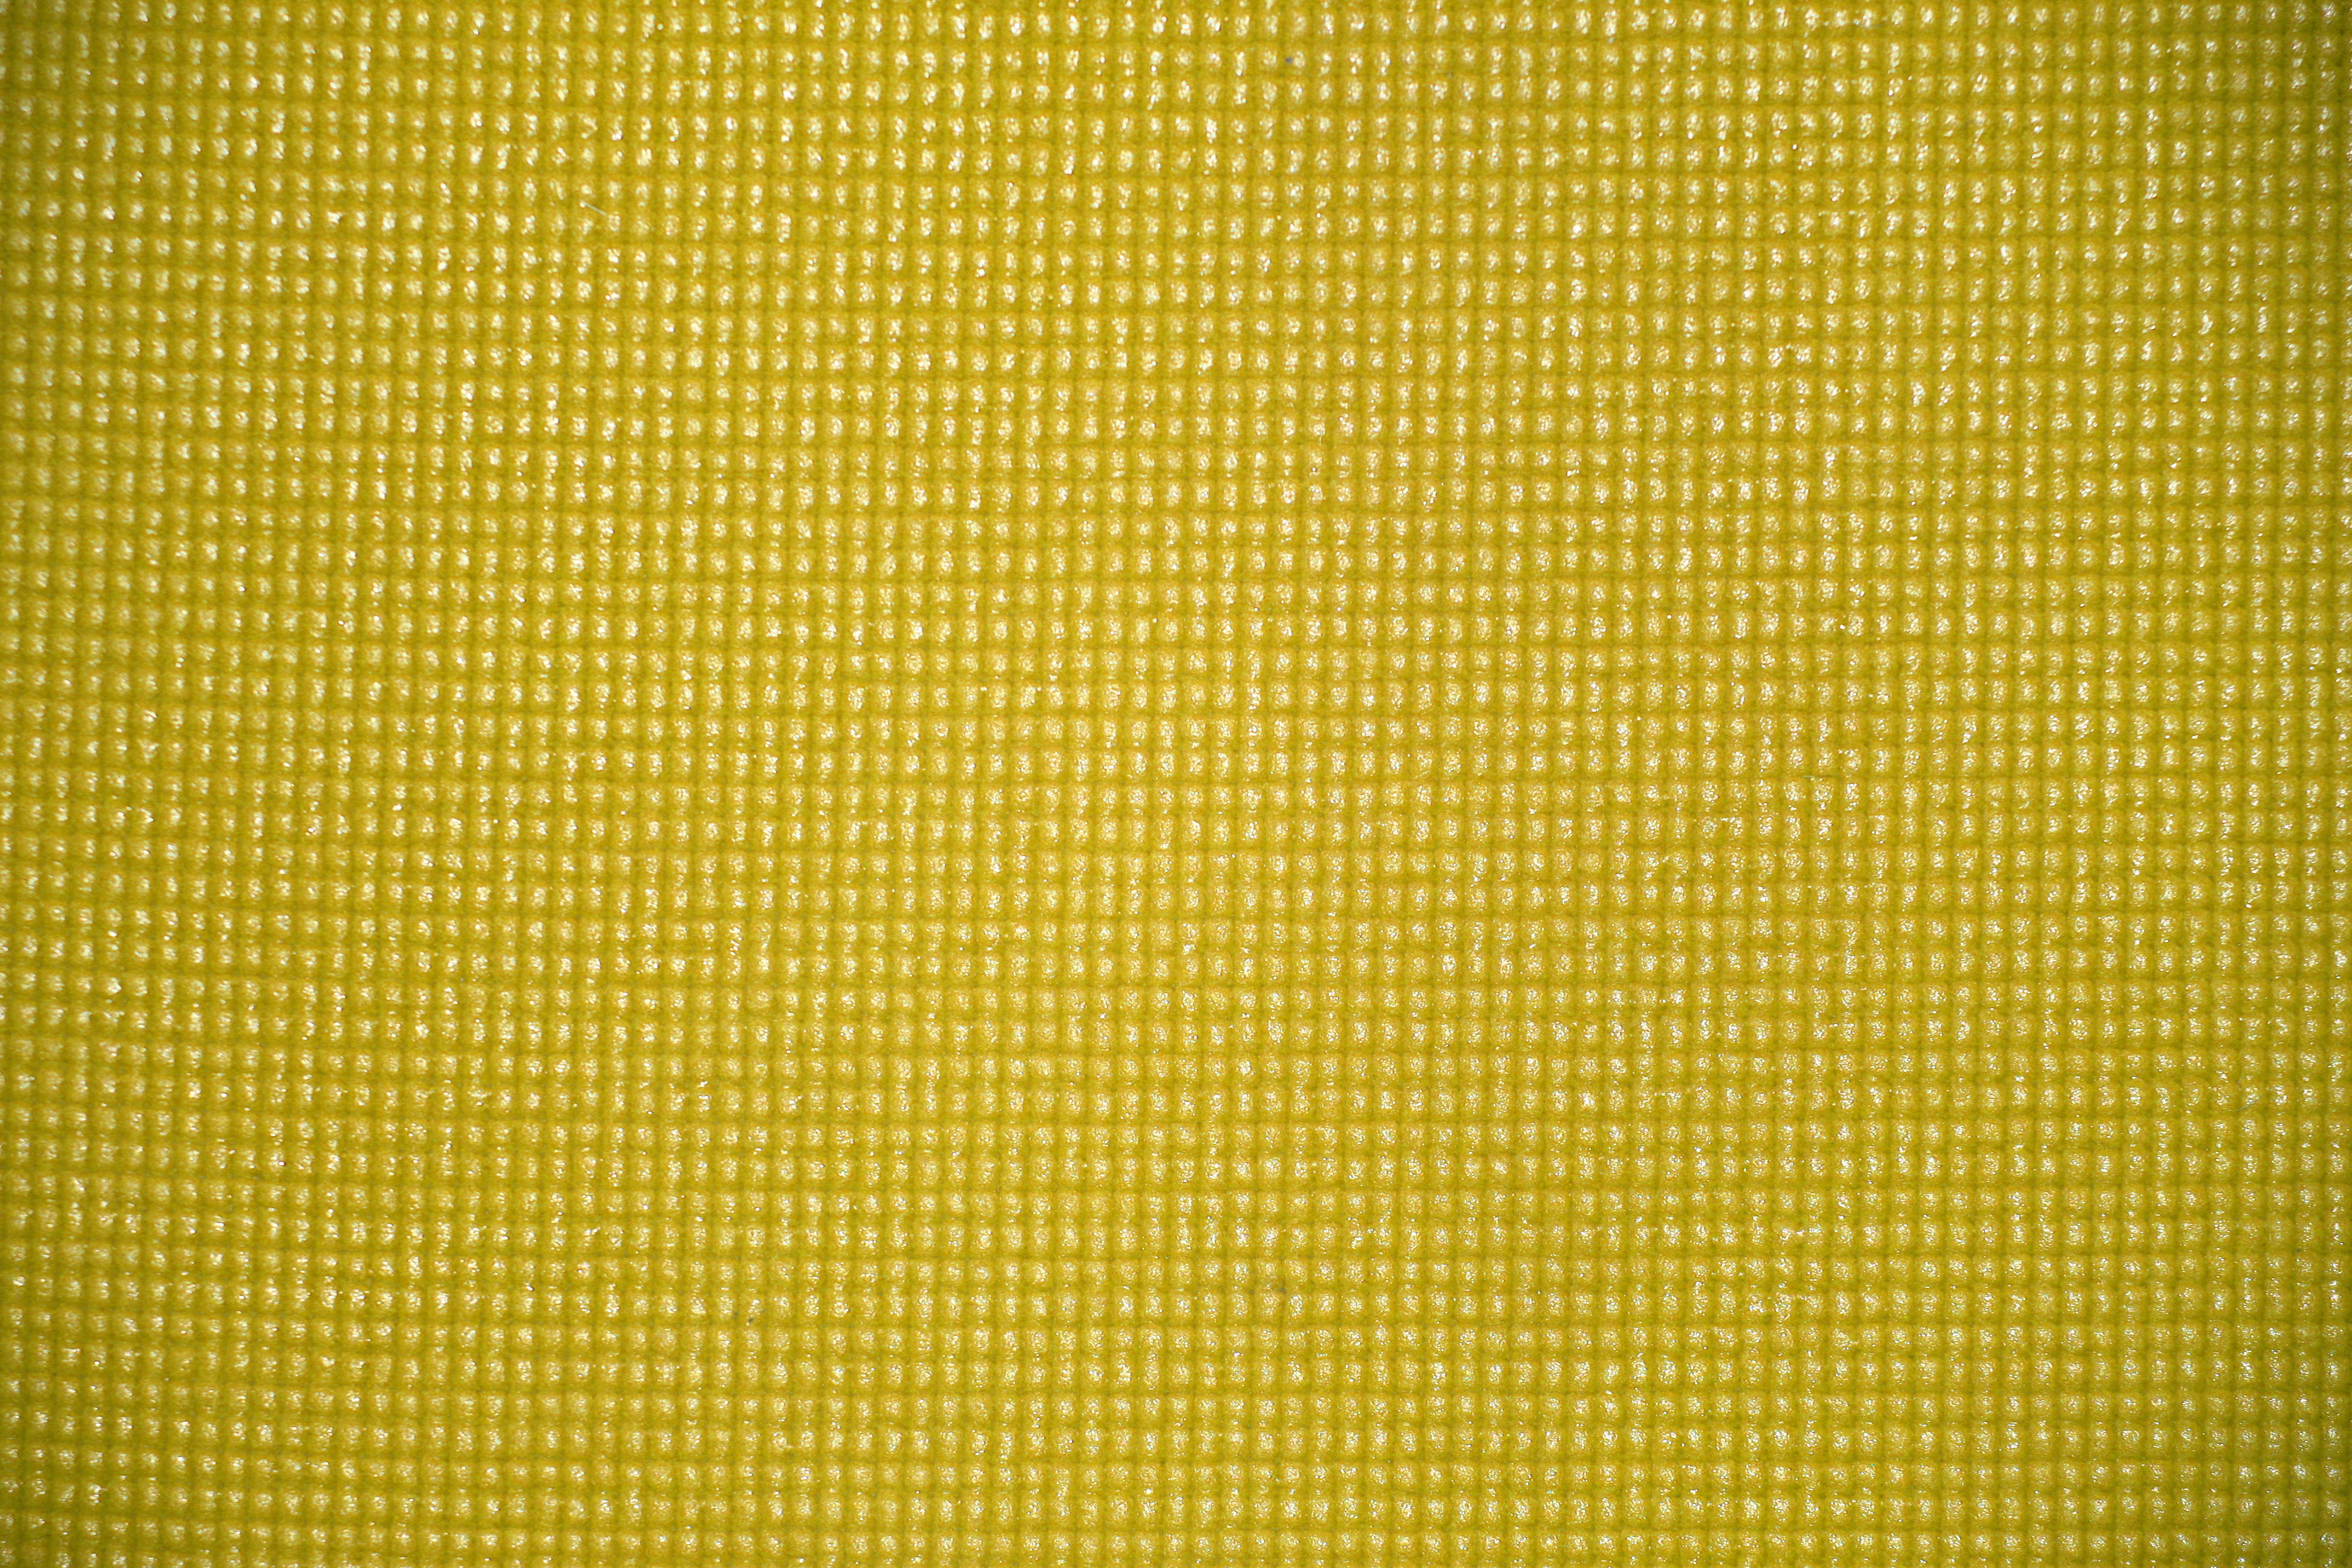 Yellow Yoga Exercise Mat Texture Picture Free Photograph